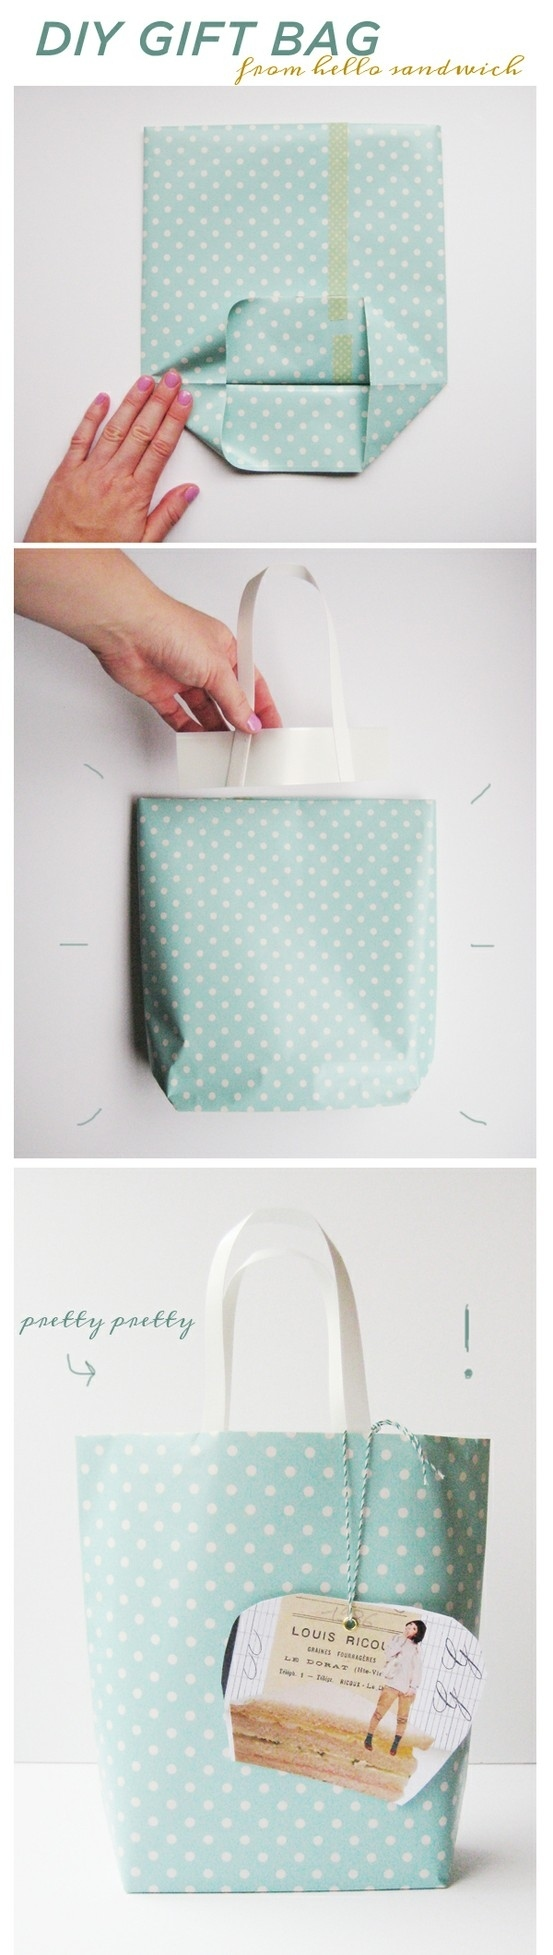 22 mind blowing ideas for gift wrapping 9diy gift bag solutioingenieria Choice Image